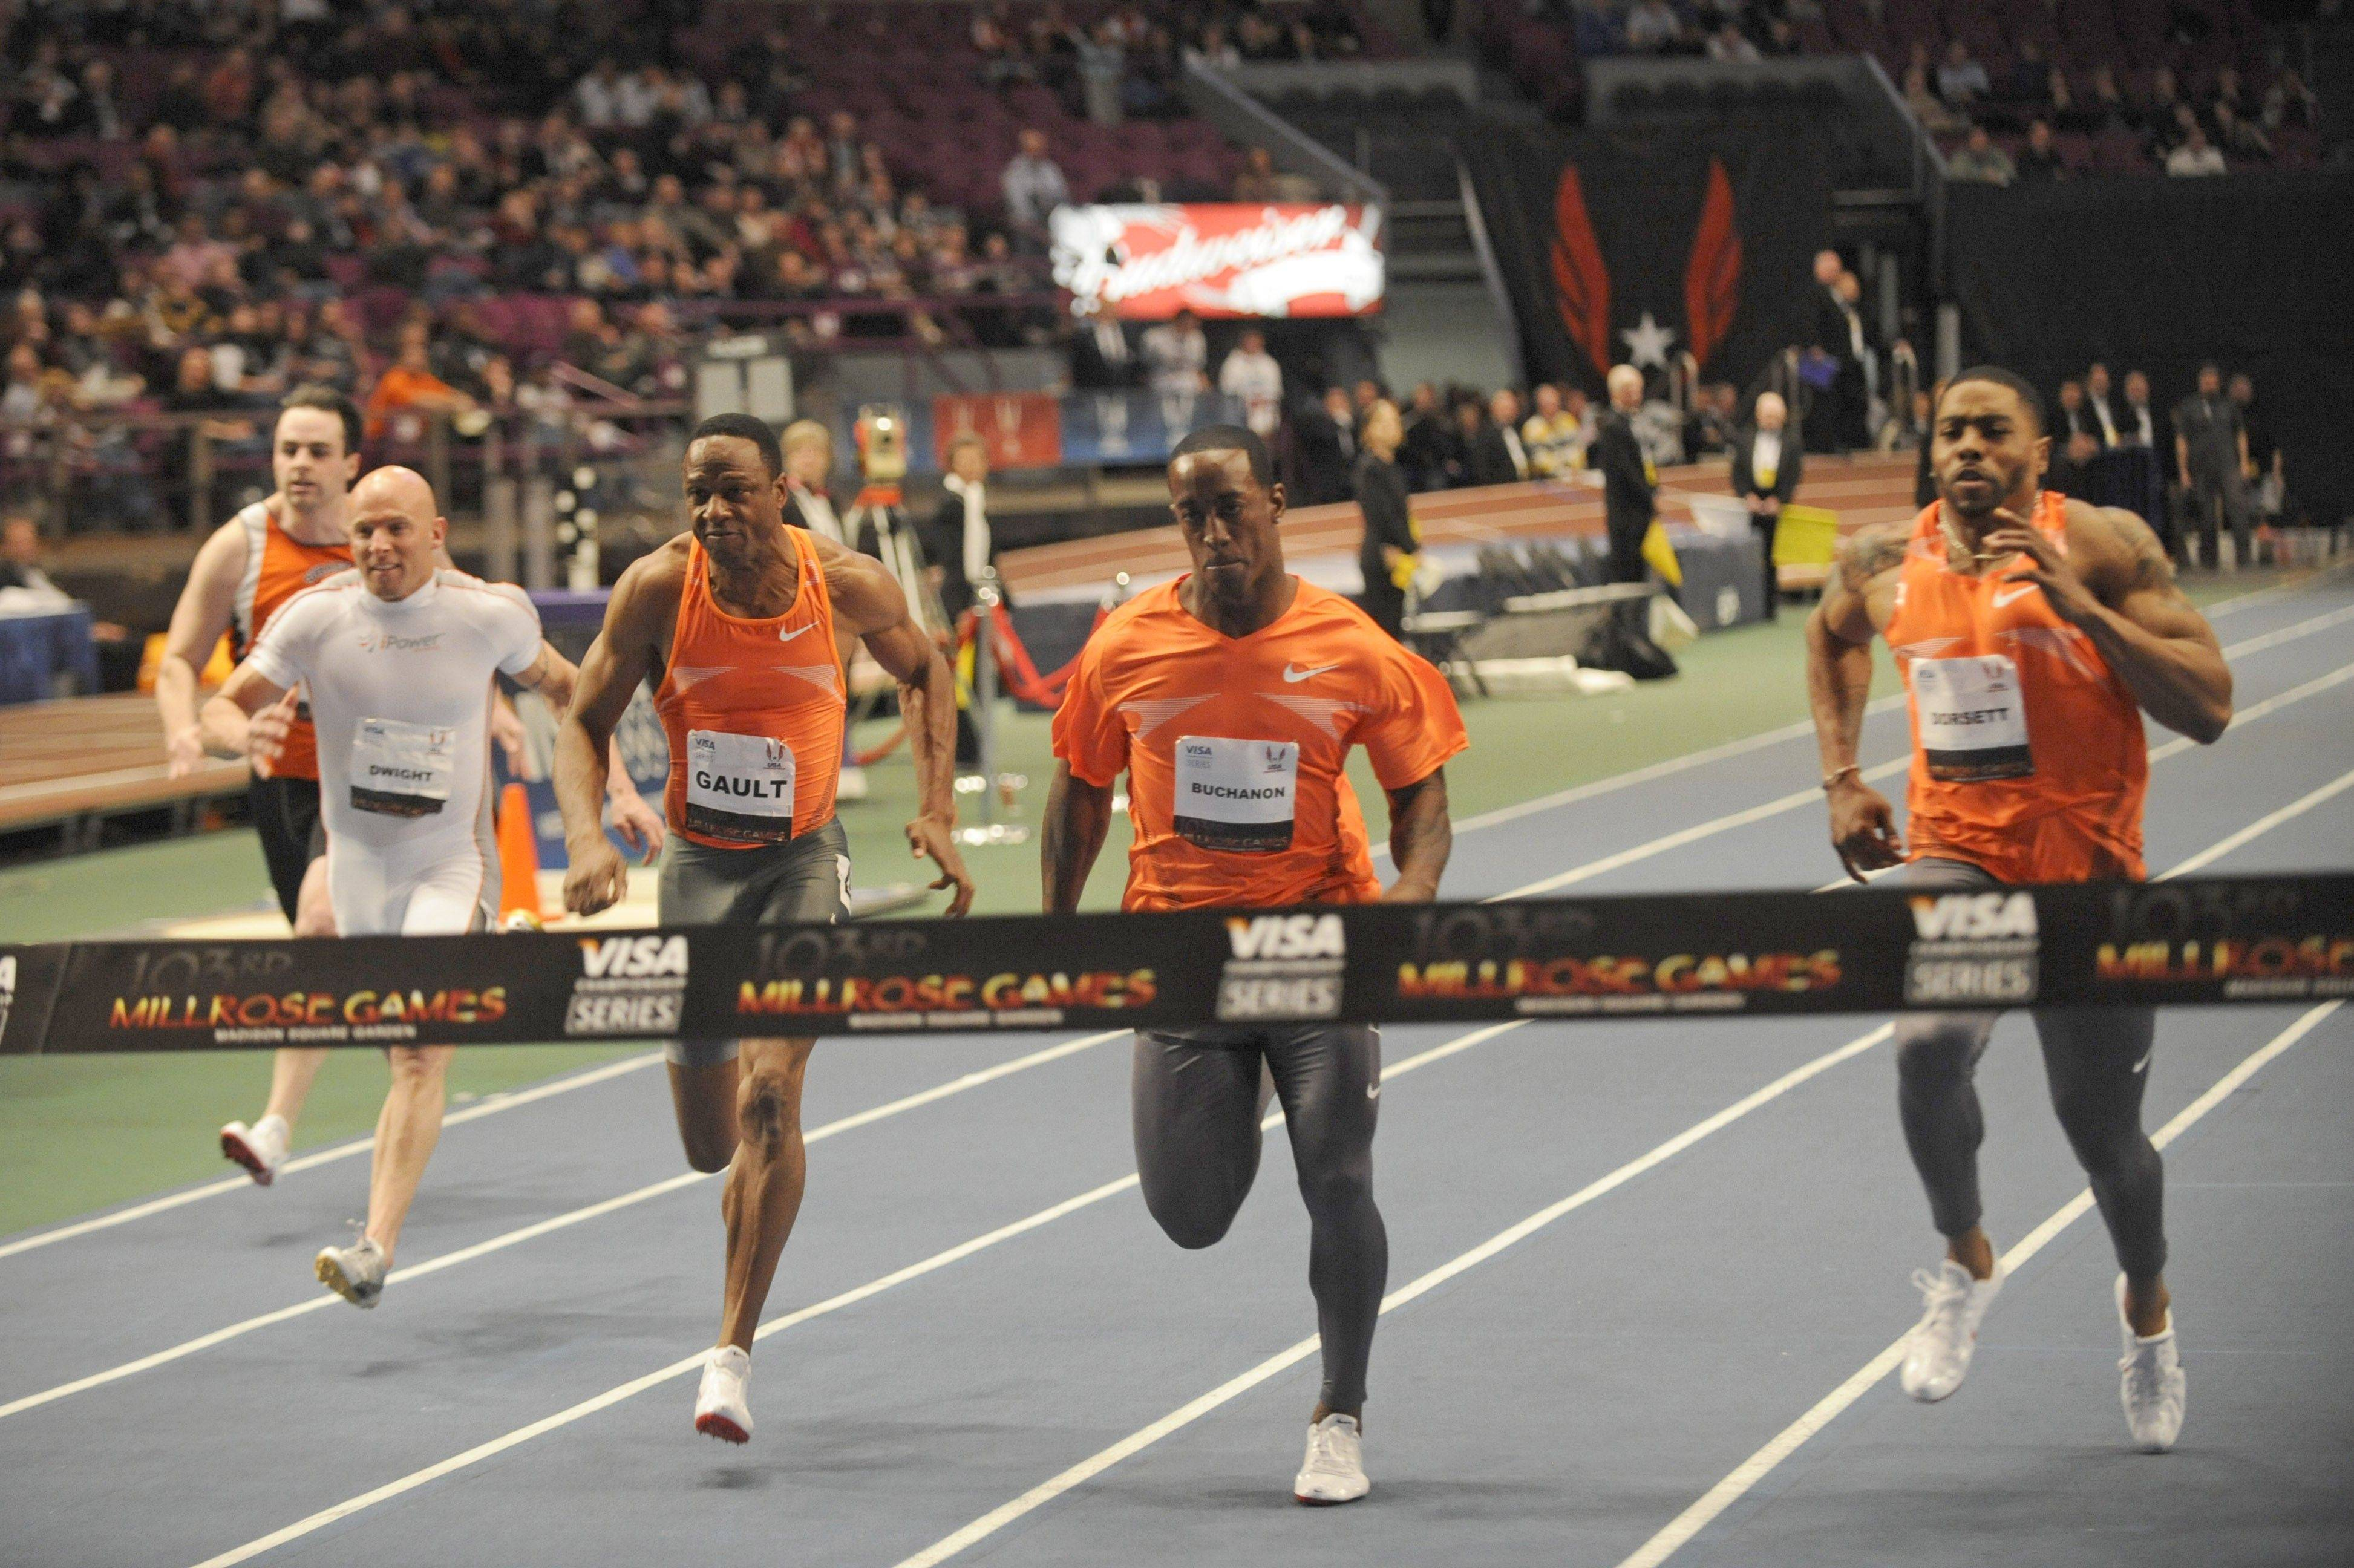 Last year, former Bears receiver and world class sprinter Willie Gault, third from left, raced several former NFL players in the 60-meter dash at the Milrose Games. Anthony Dorsett Jr., 13 years younger than Gault, won the contest. Gault, however, recently set two world records at a masters track event.